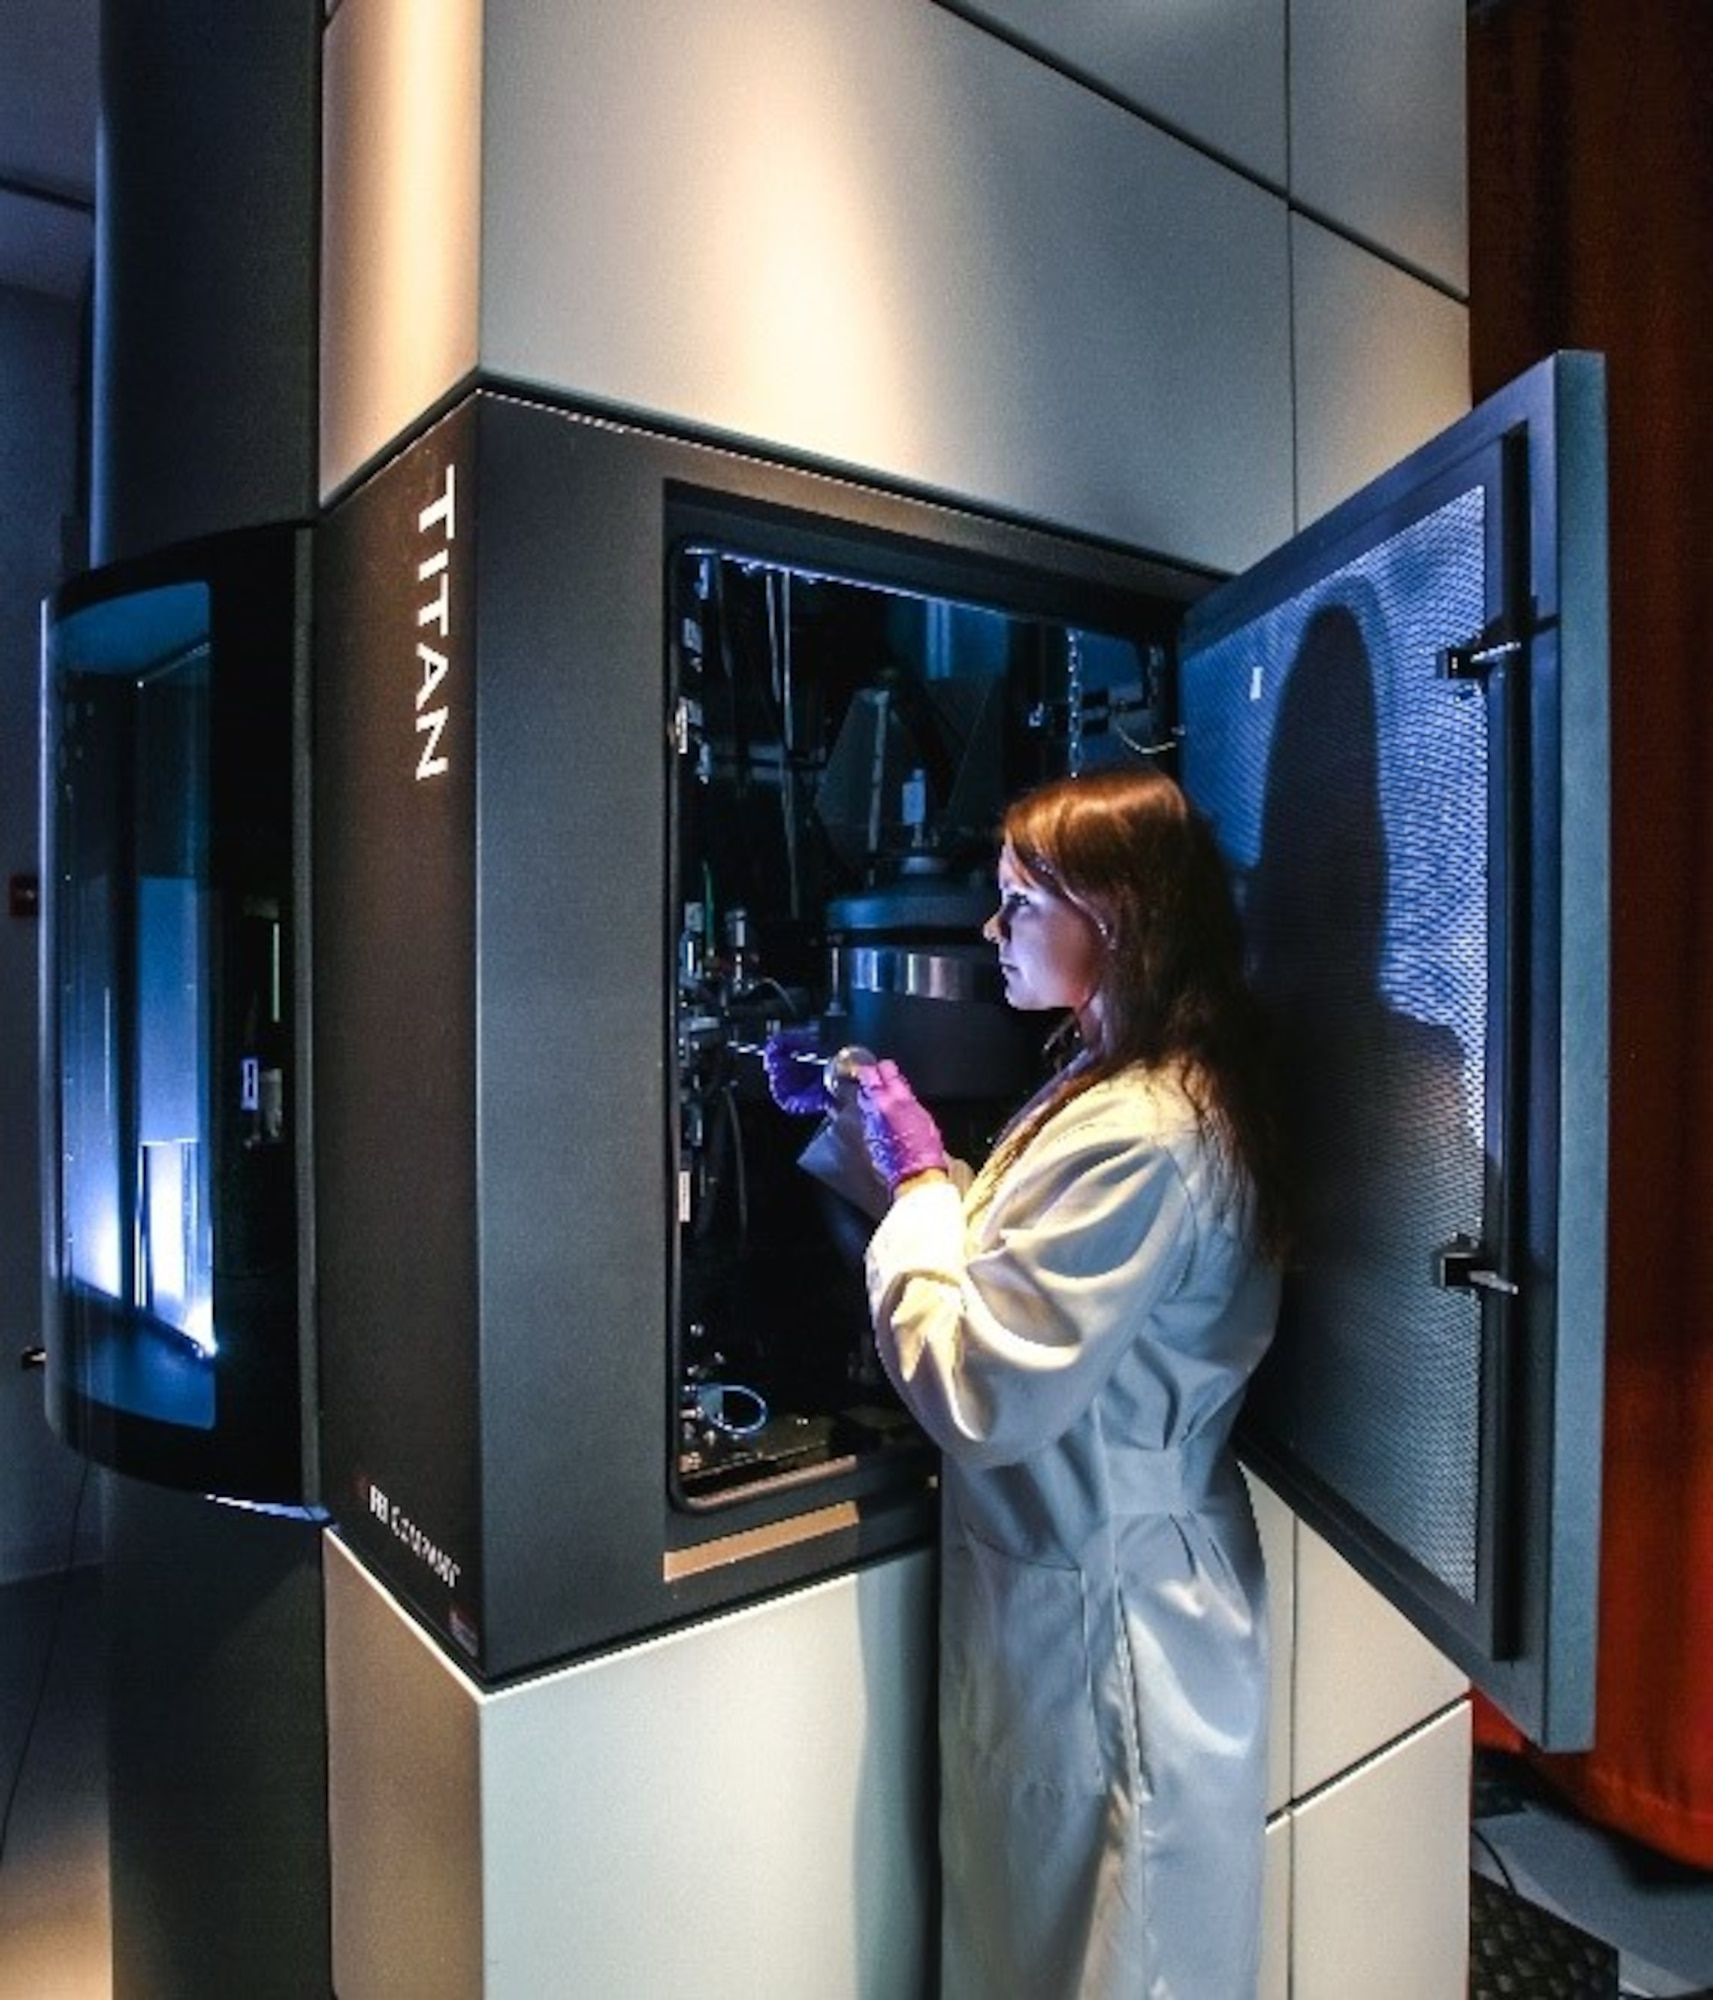 OSU student Julia Deitz uses state-of-the-art electron microscopes to push the boundaries of precision metrology techniques for advanced materials characterization. (Courtesy photo)